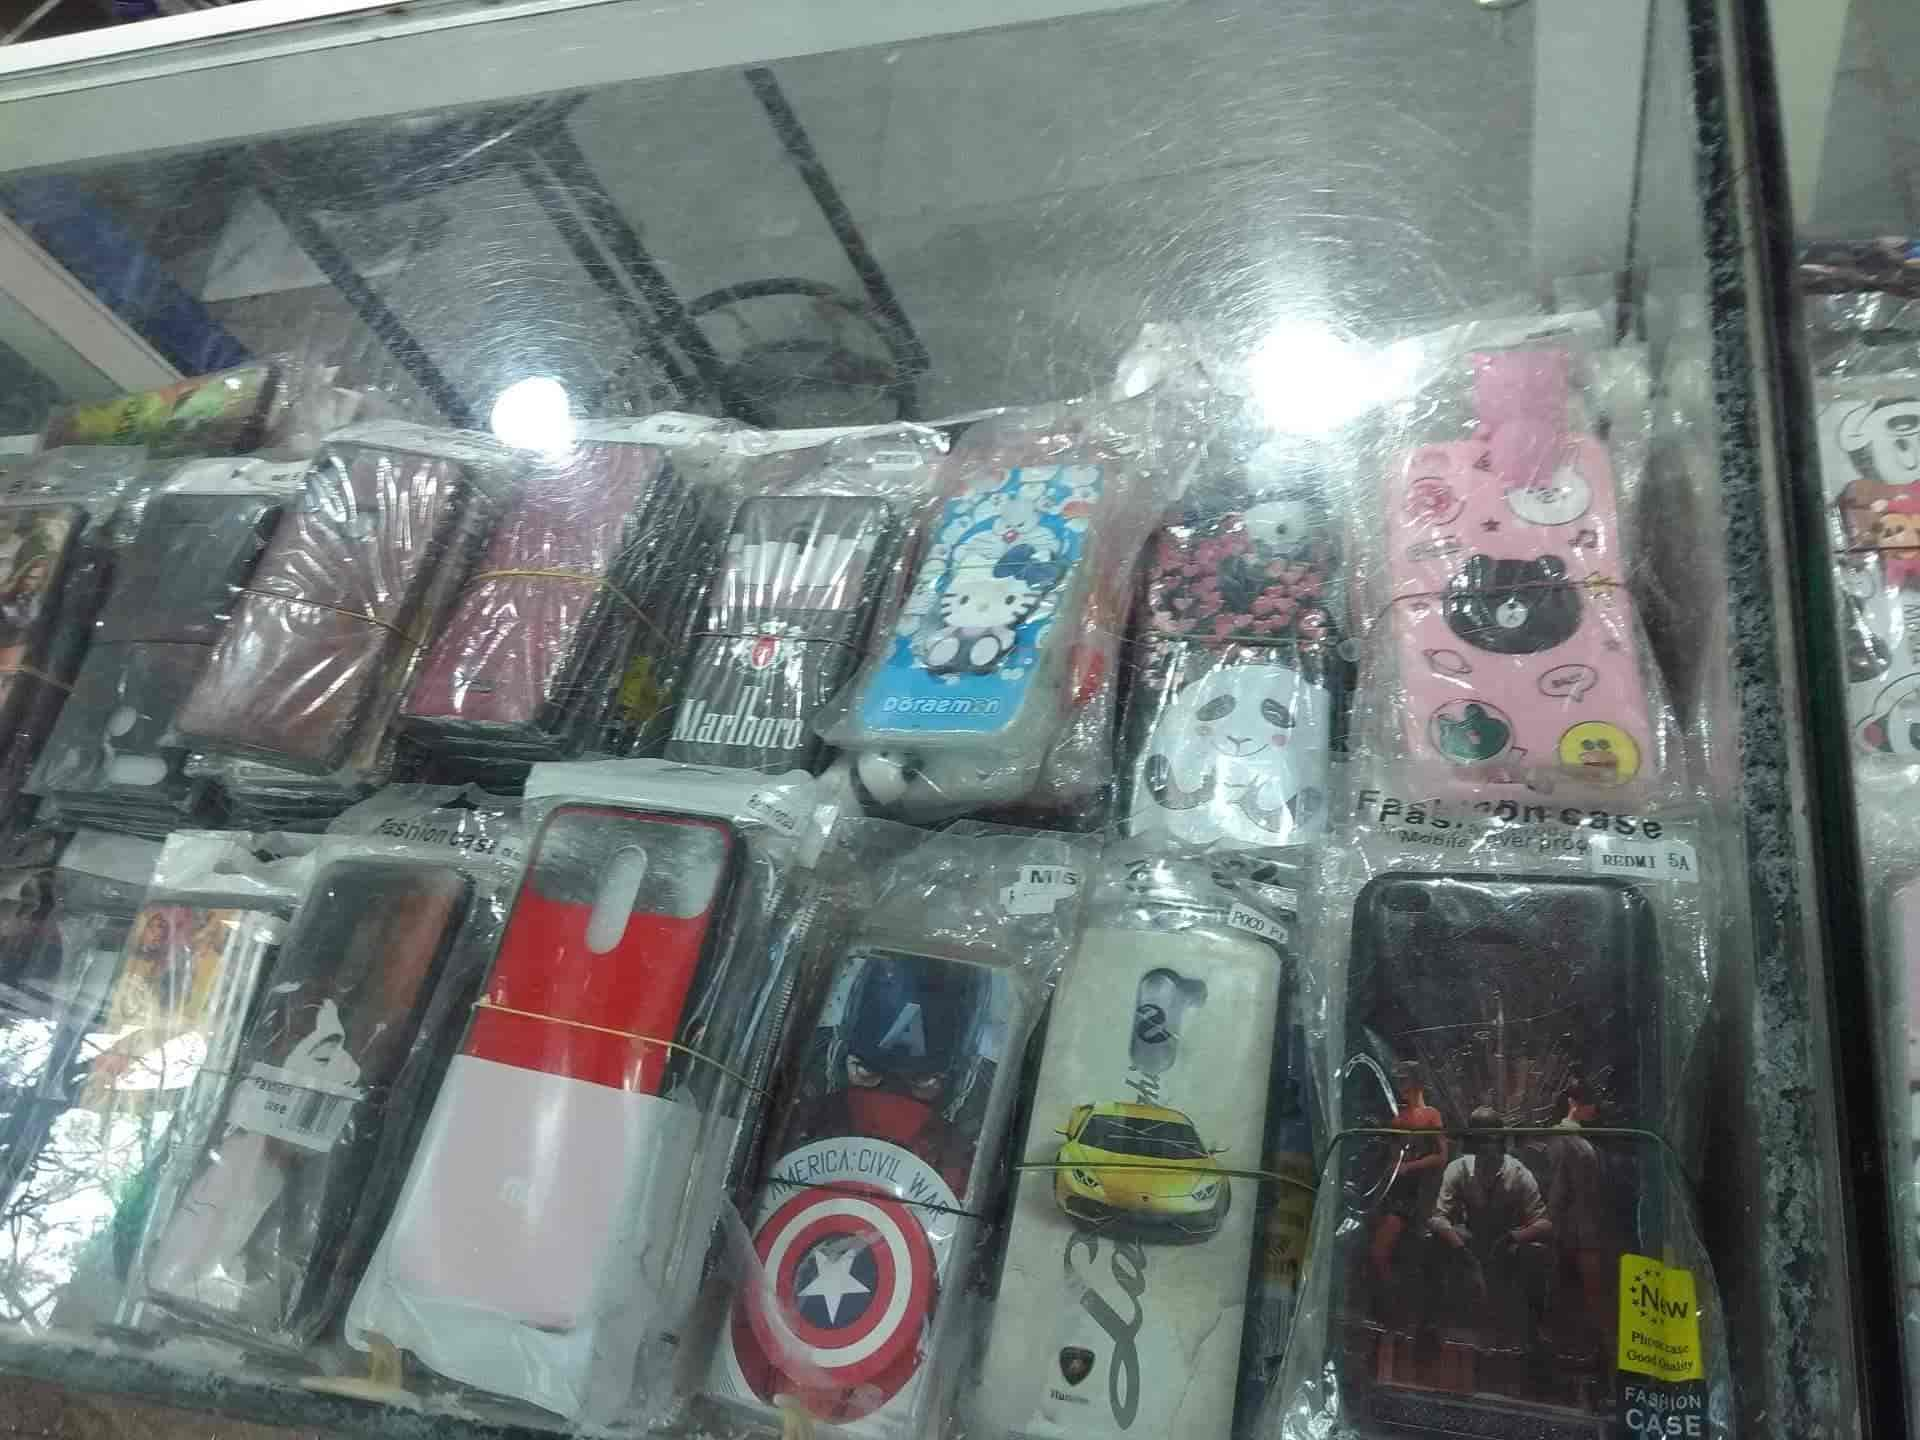 Mp 04 Mobile Photos, M P Nagar, Bhopal- Pictures & Images Gallery